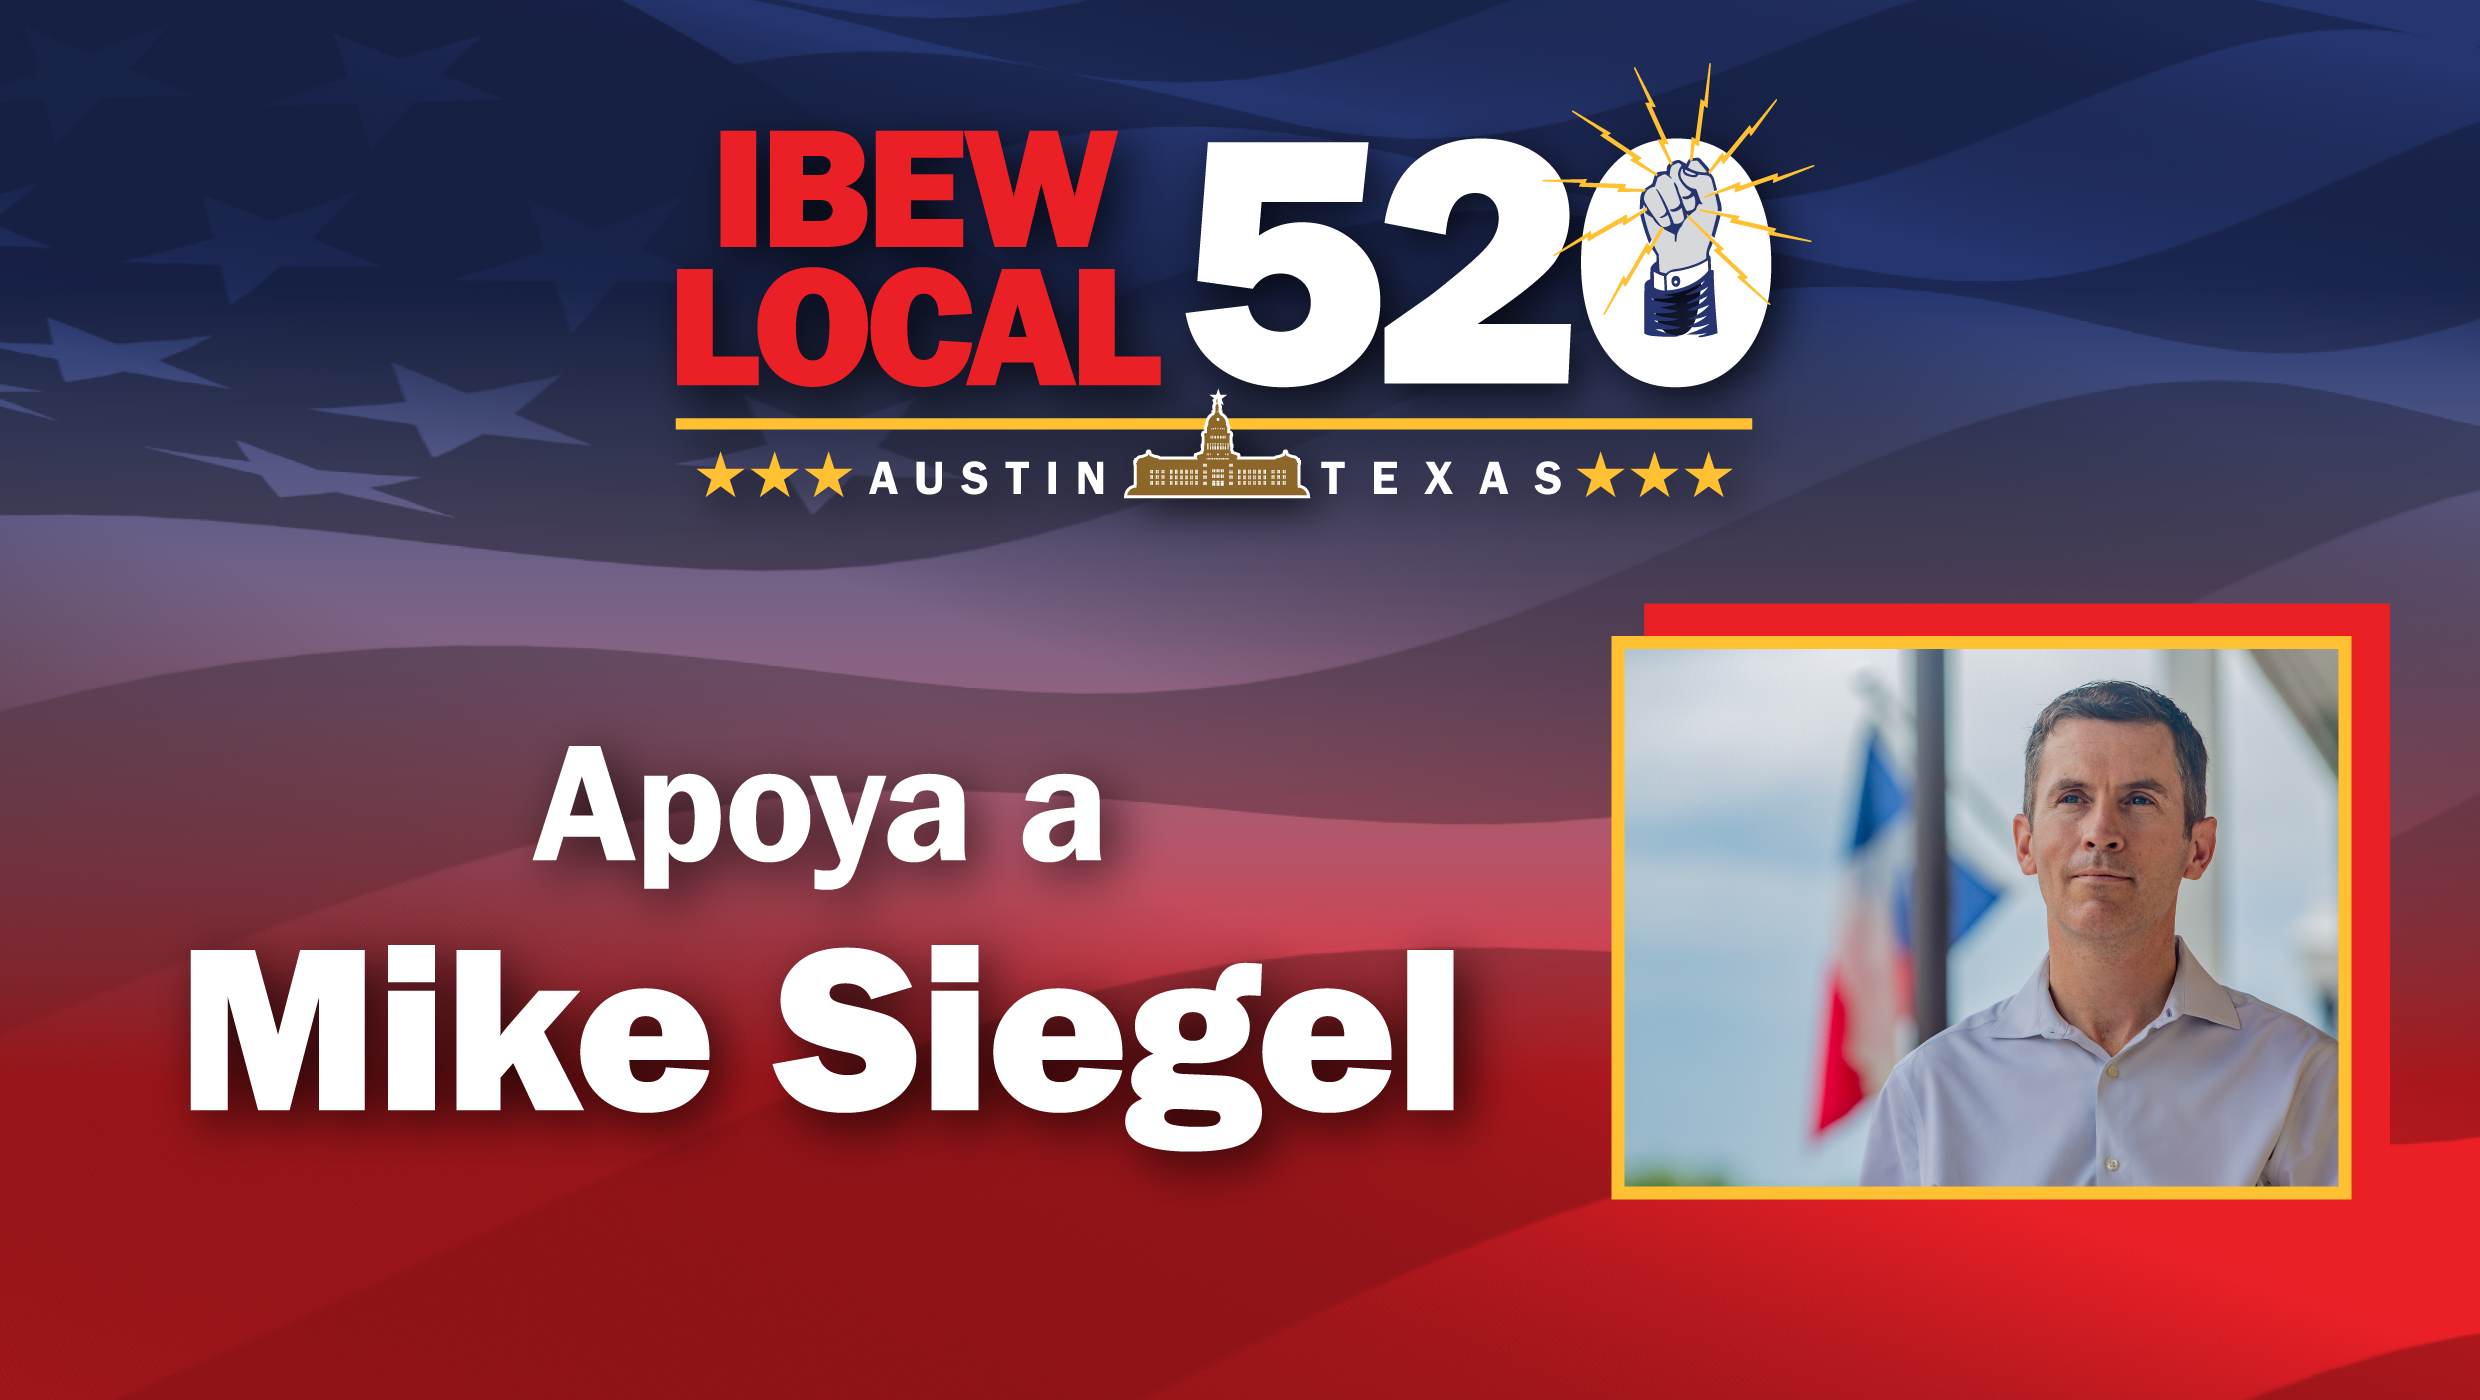 IBEW Local 520 Respalda A Mike Siegel